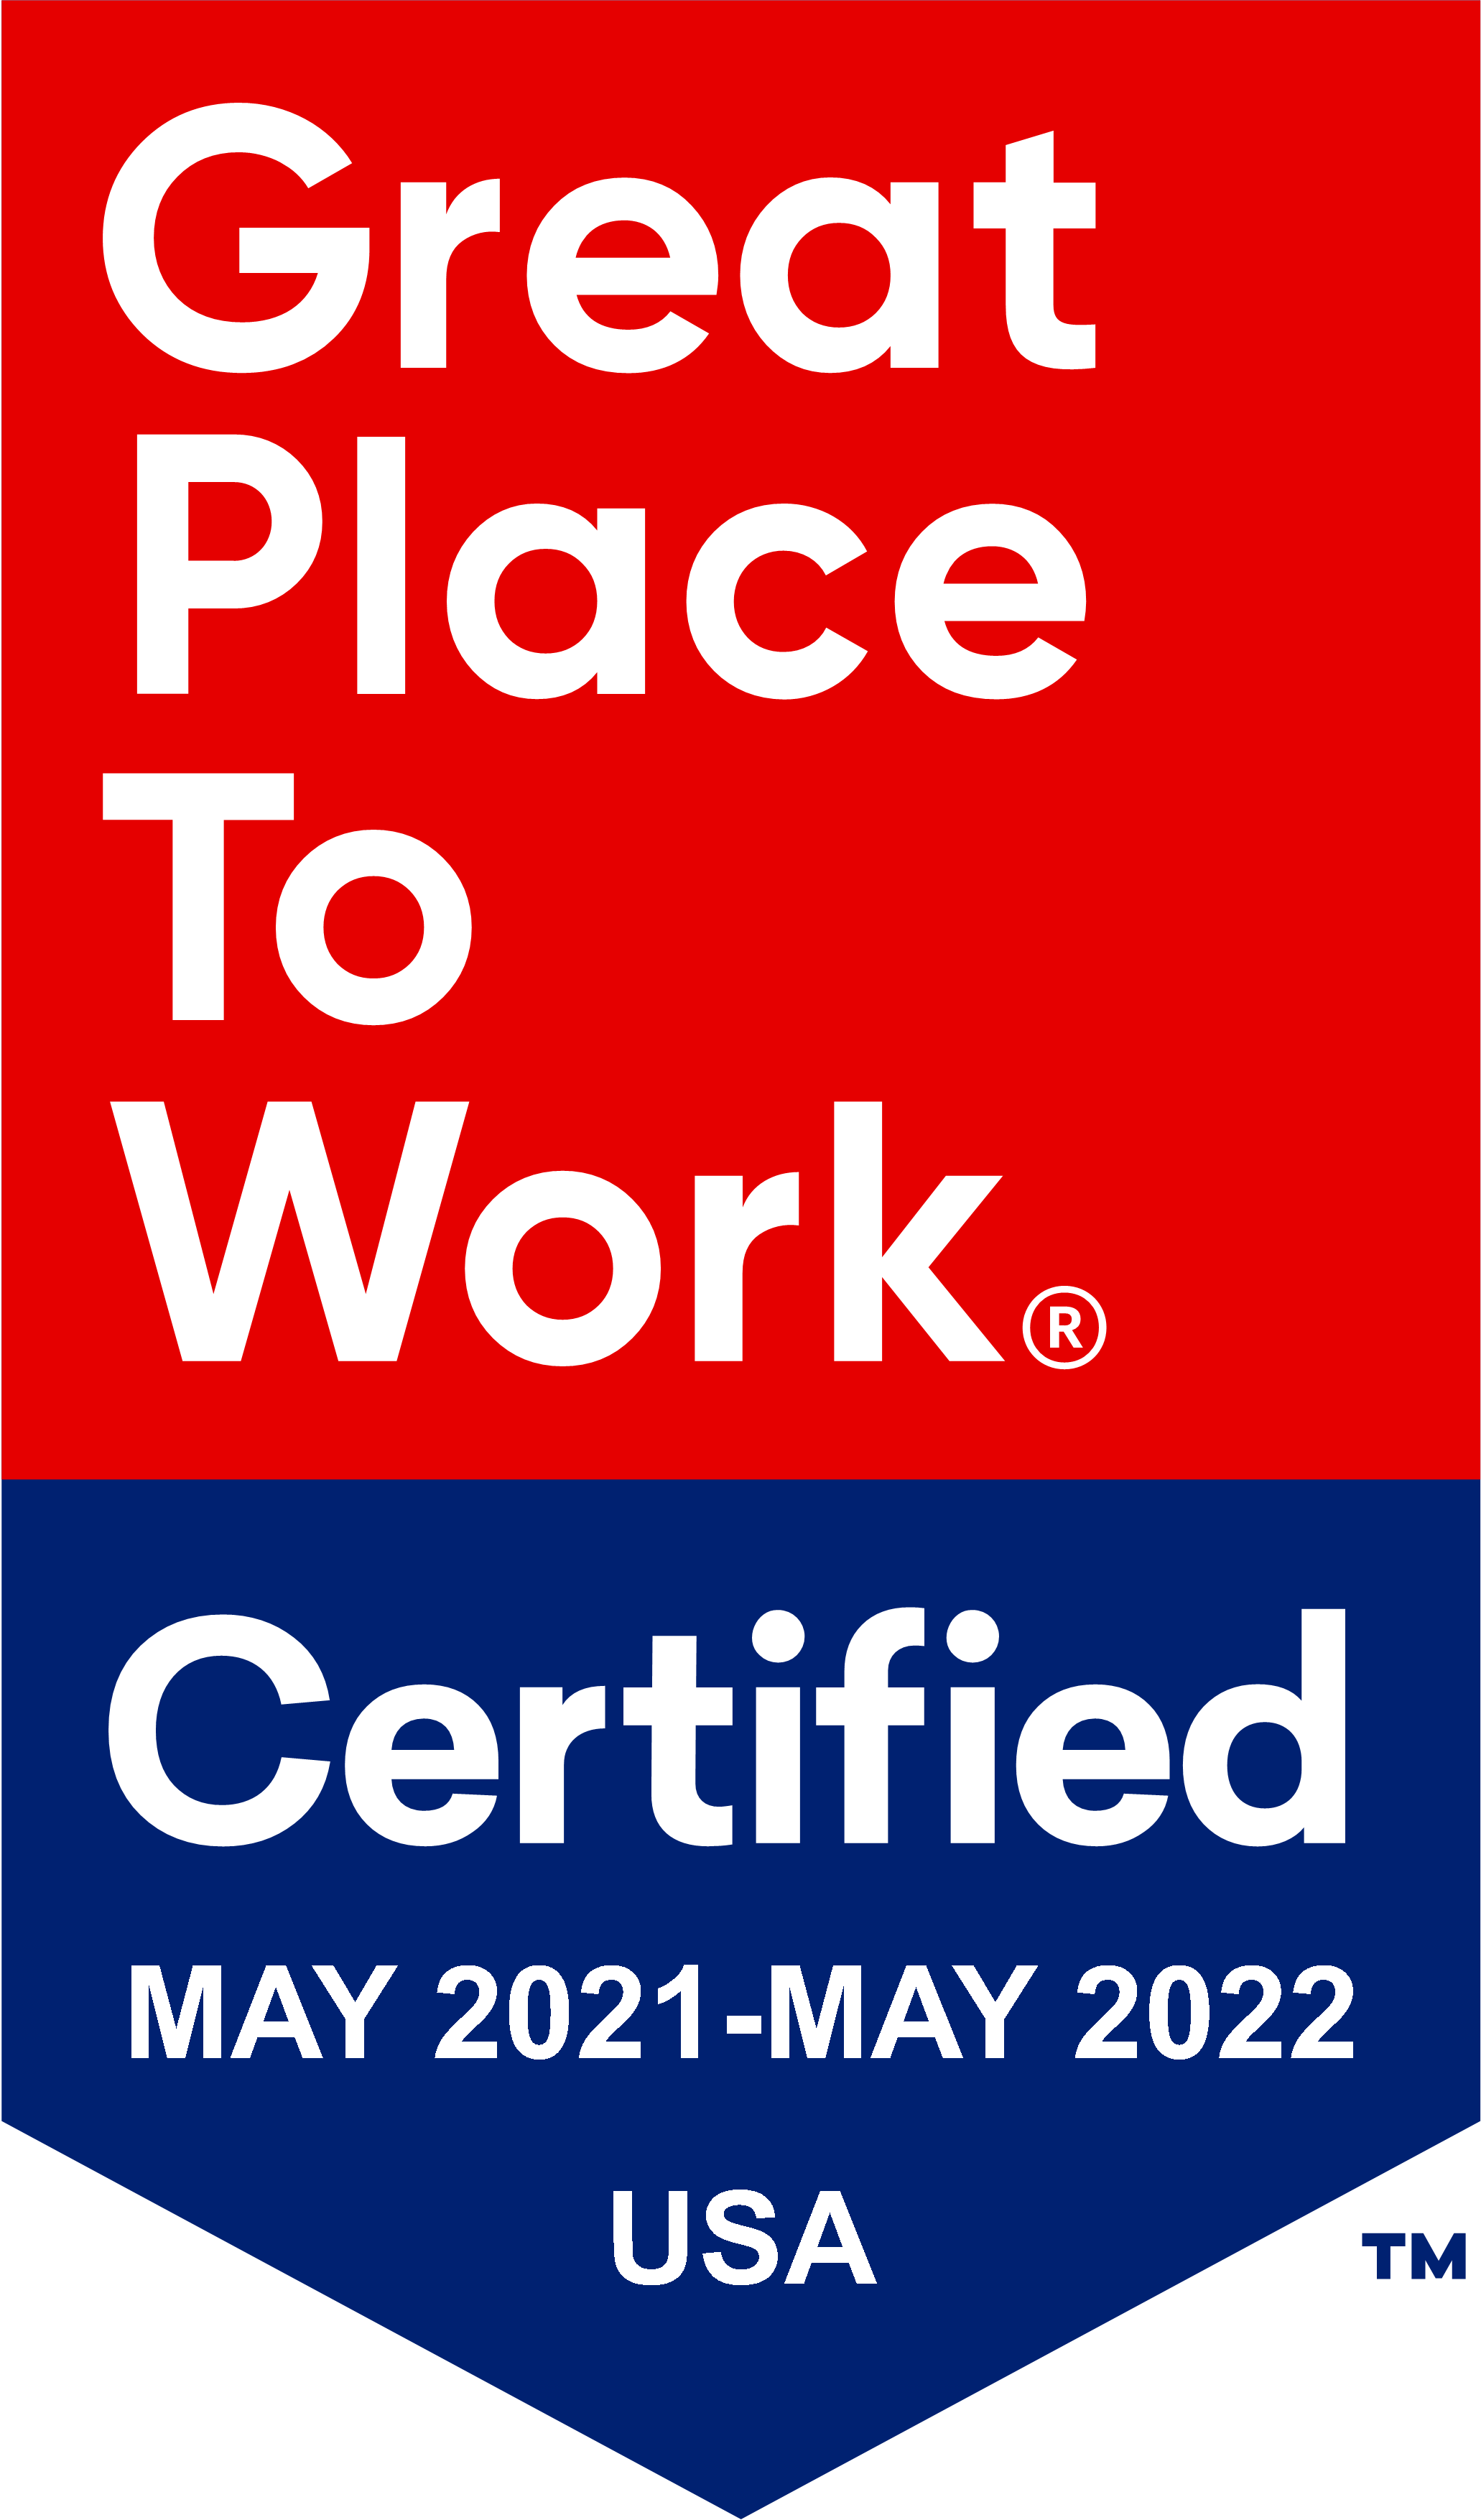 Great Place To Work Certification for 2021